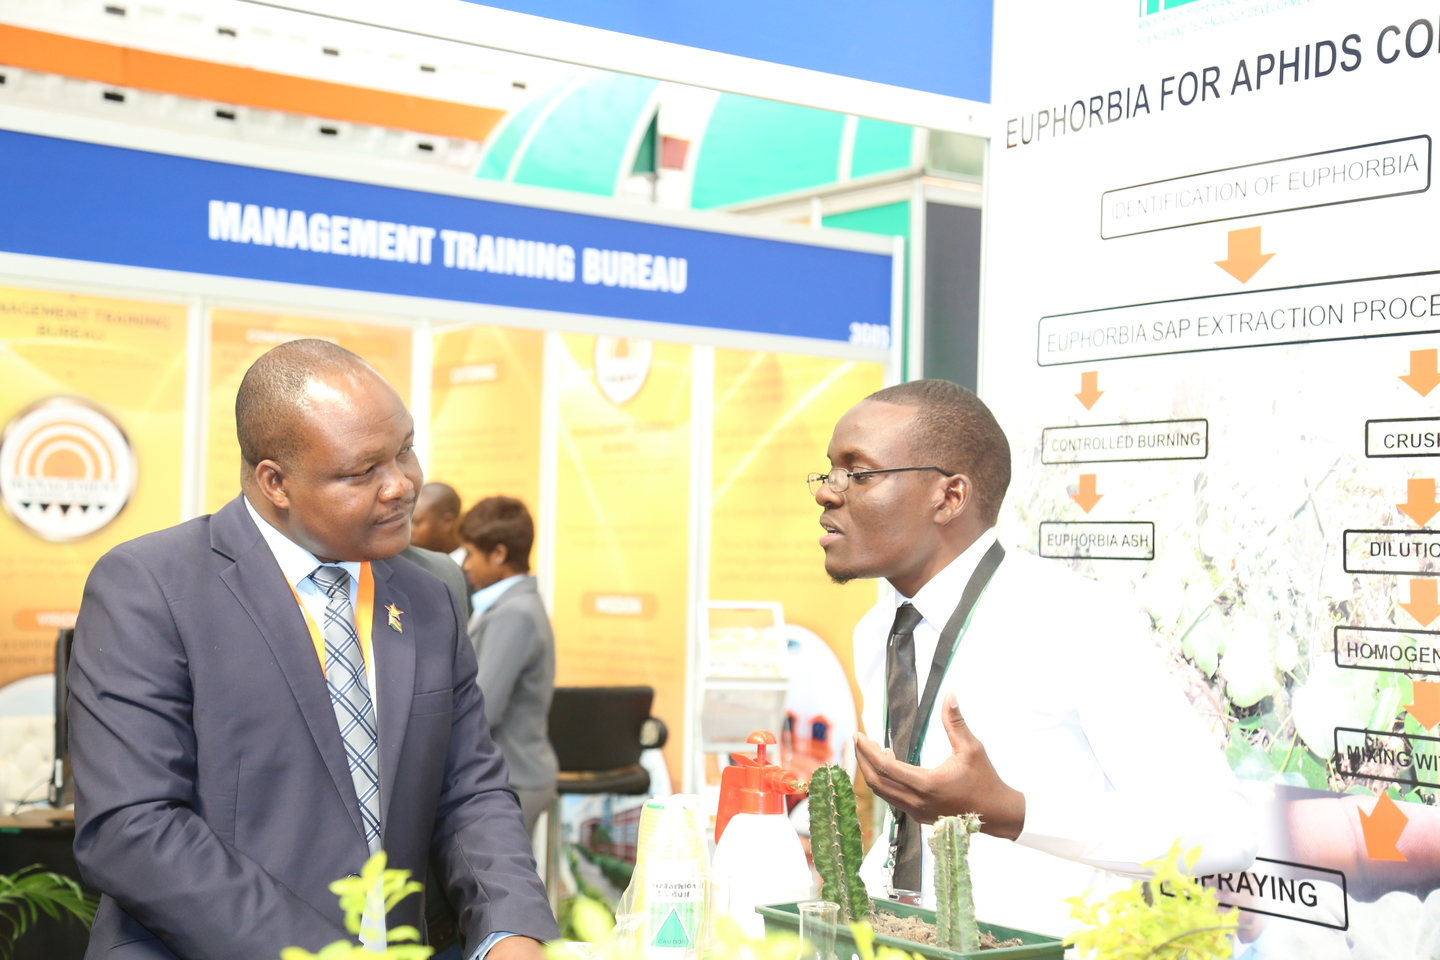 High and Tertiary Education, Science and Technology Development Deputy Minister Dr Godfrey Gandawa visited our stand